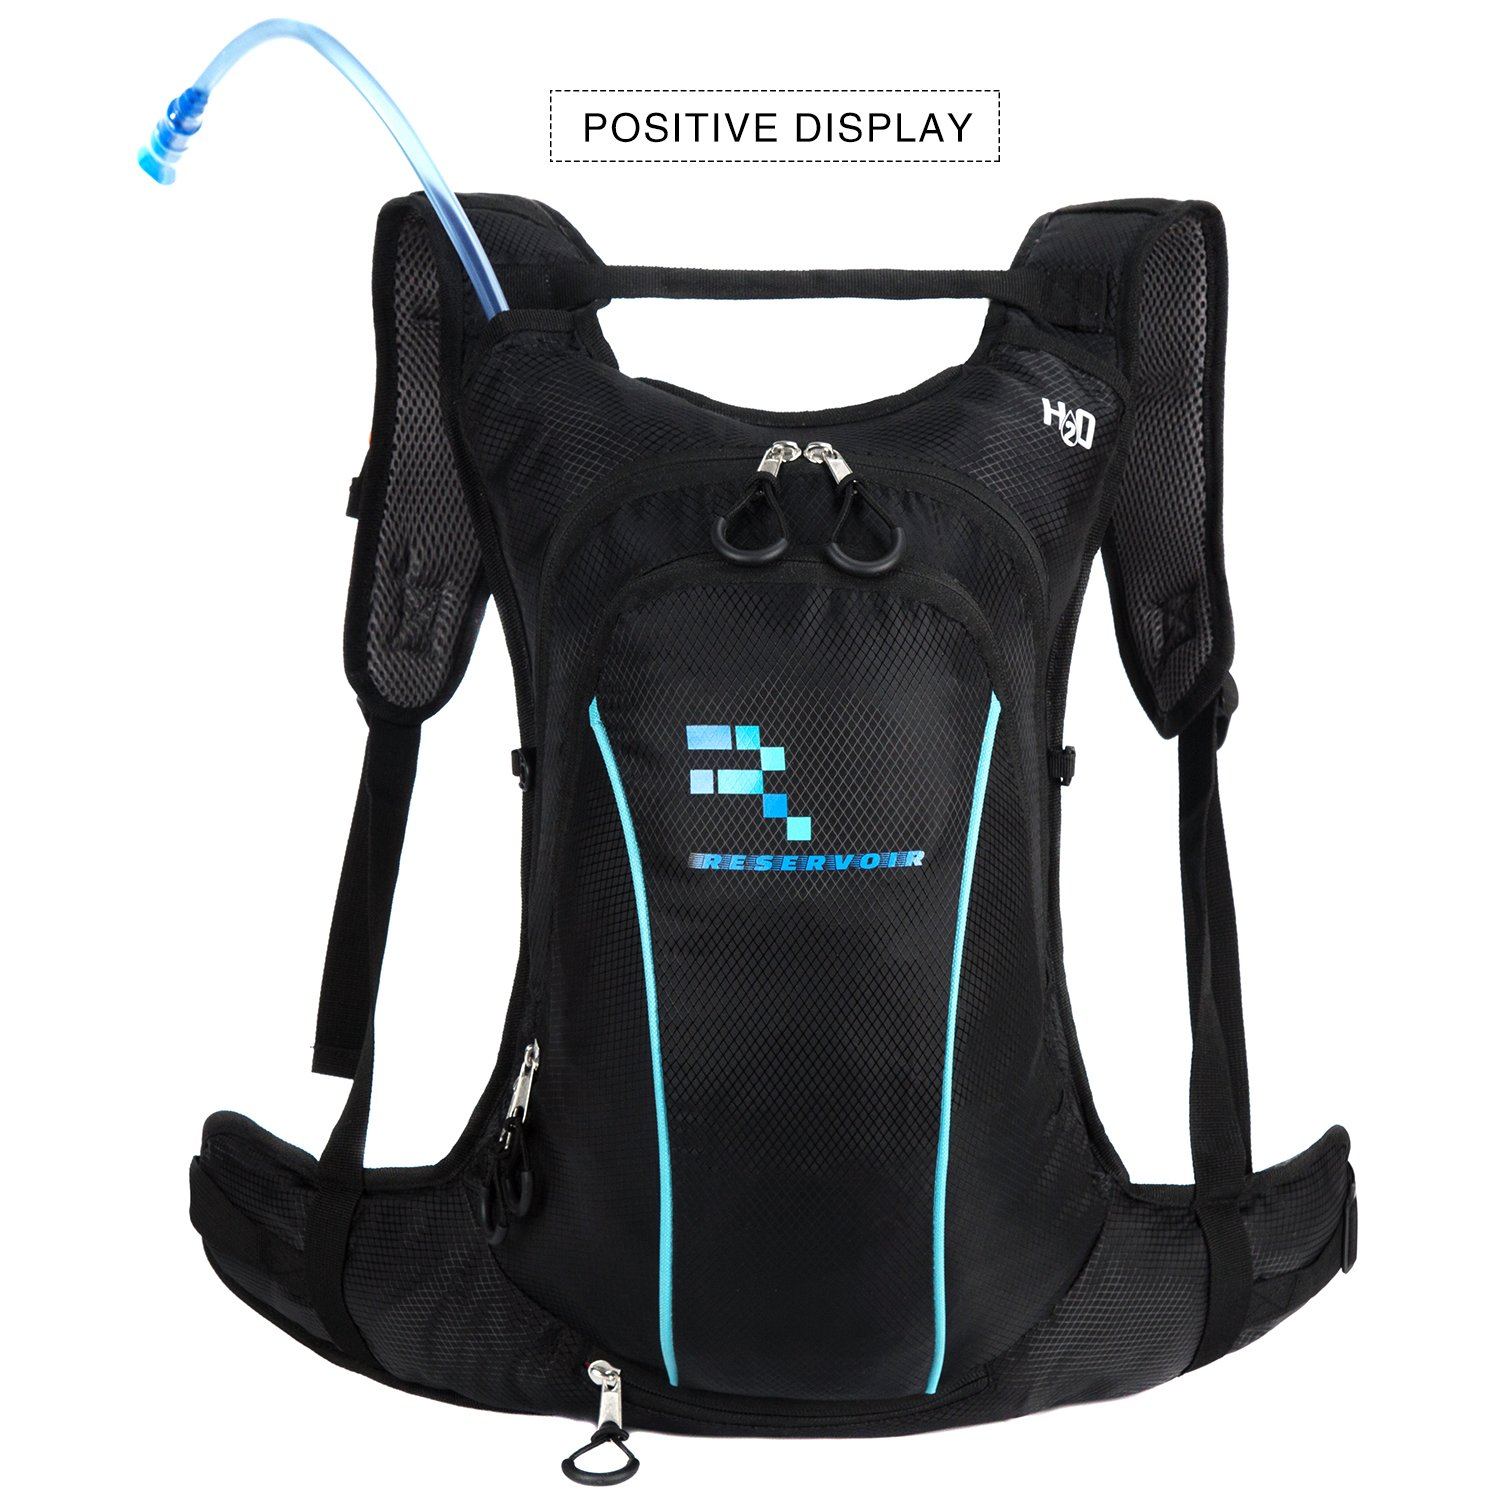 Reservoir Optimum Performance Hydration Backpack, Water Bladder Included - Small, Light Weight, Unisex Design For Men and Women, Weather Resistant, Perfect Pack for Festivals, Cycling, Running, Hiking